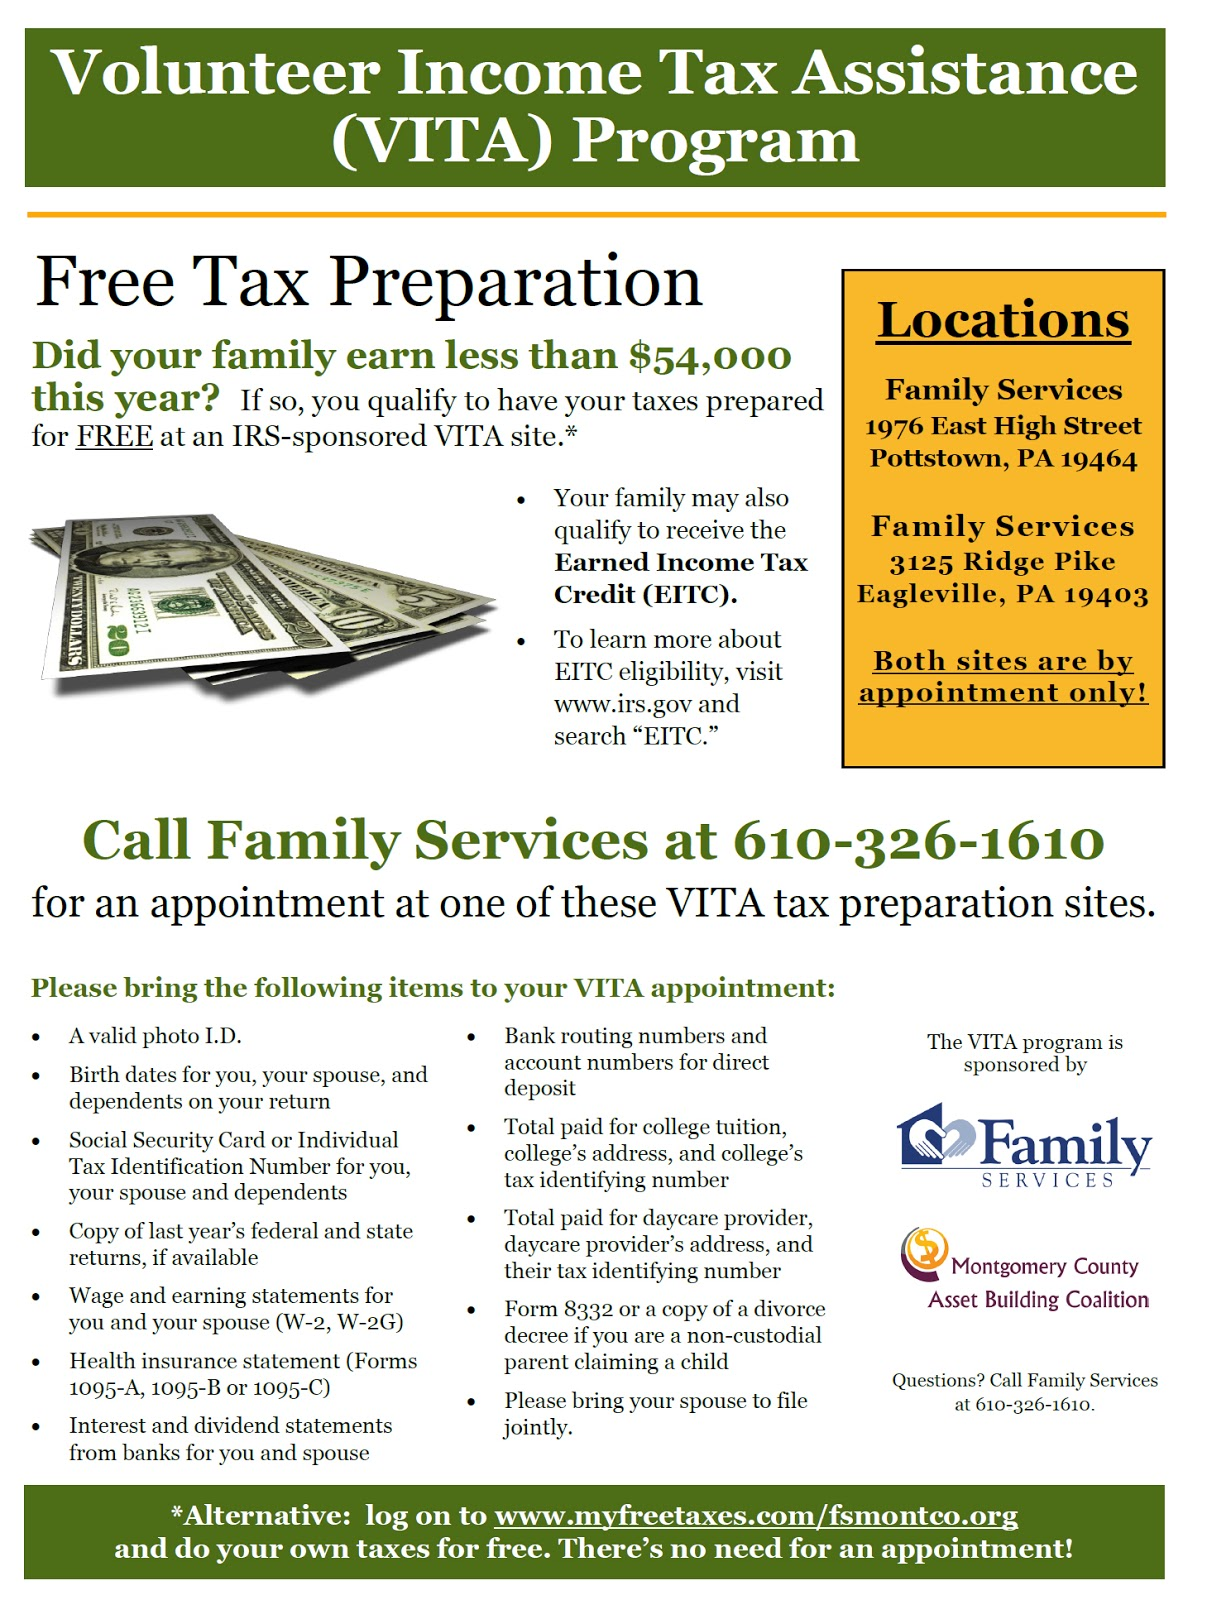 Digital Notebook: Get Your Taxes Done for Free in Pottstown